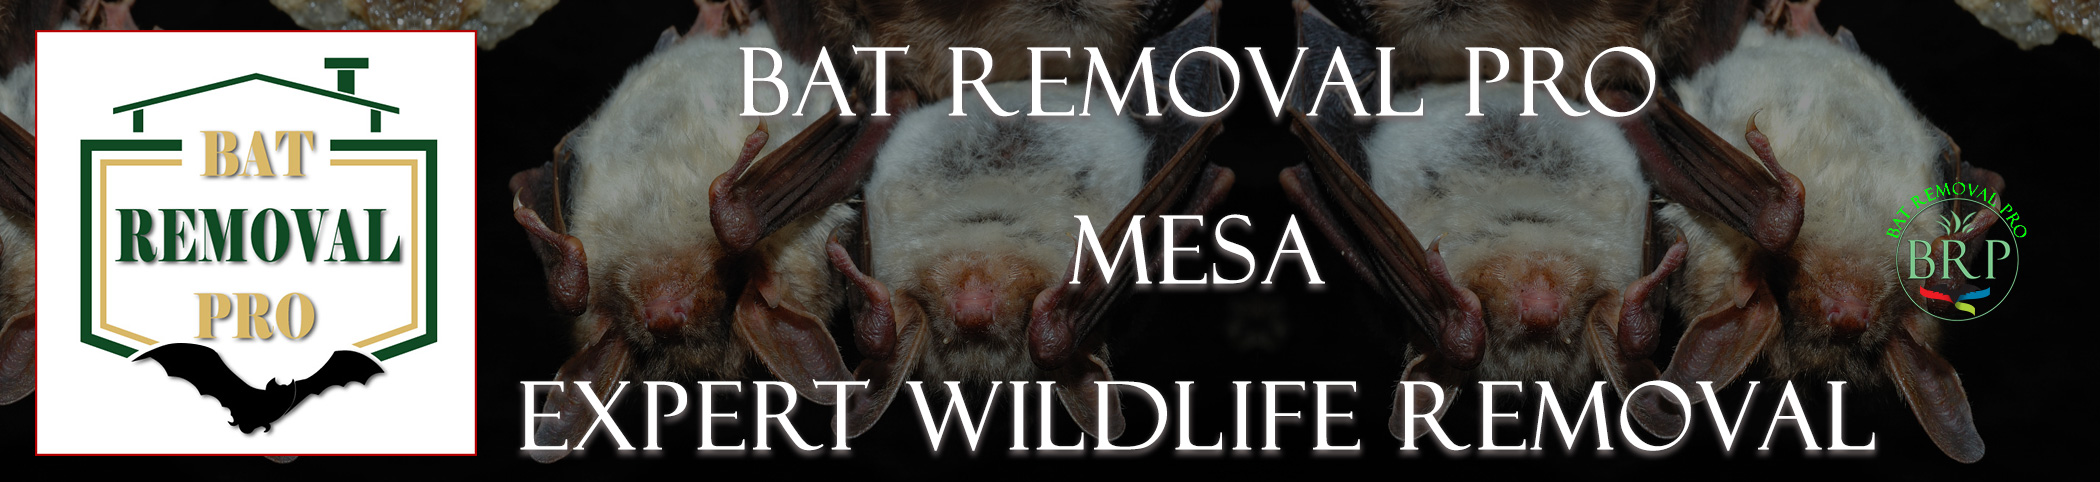 Mesa_arizona_HEADER_IMAGE bat removal pro